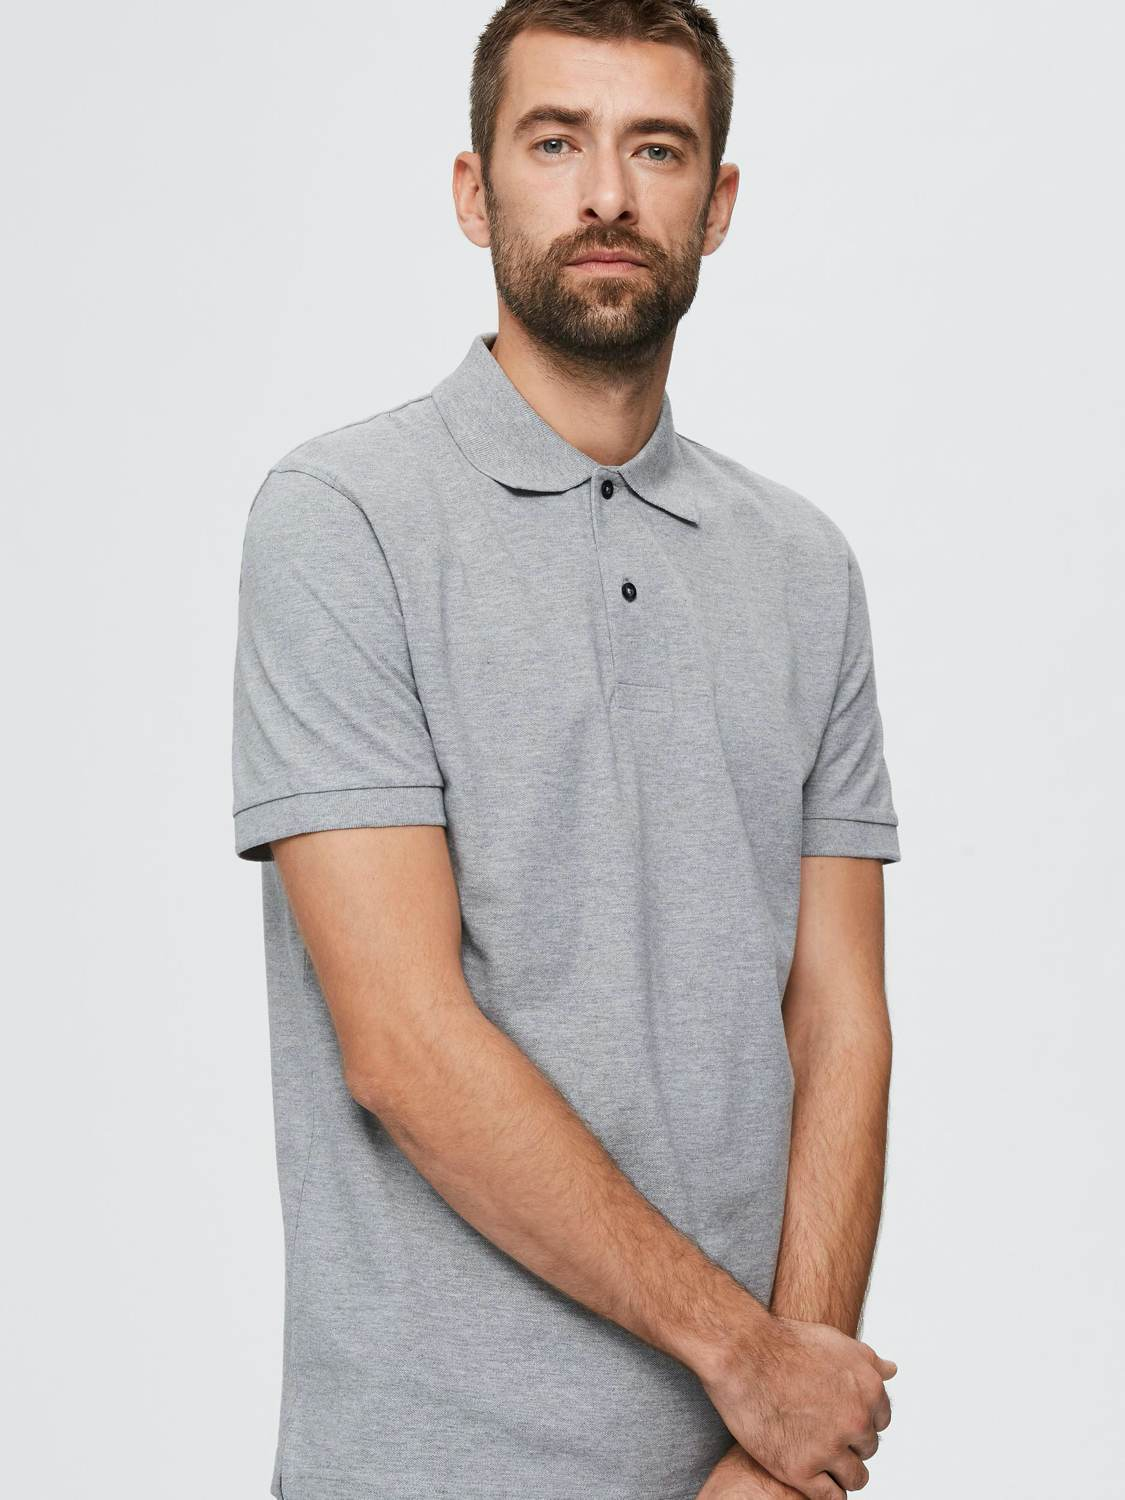 SELECTED POLO T-SHIRT SLHNEO GREY MEL | GATE 36 Hobro